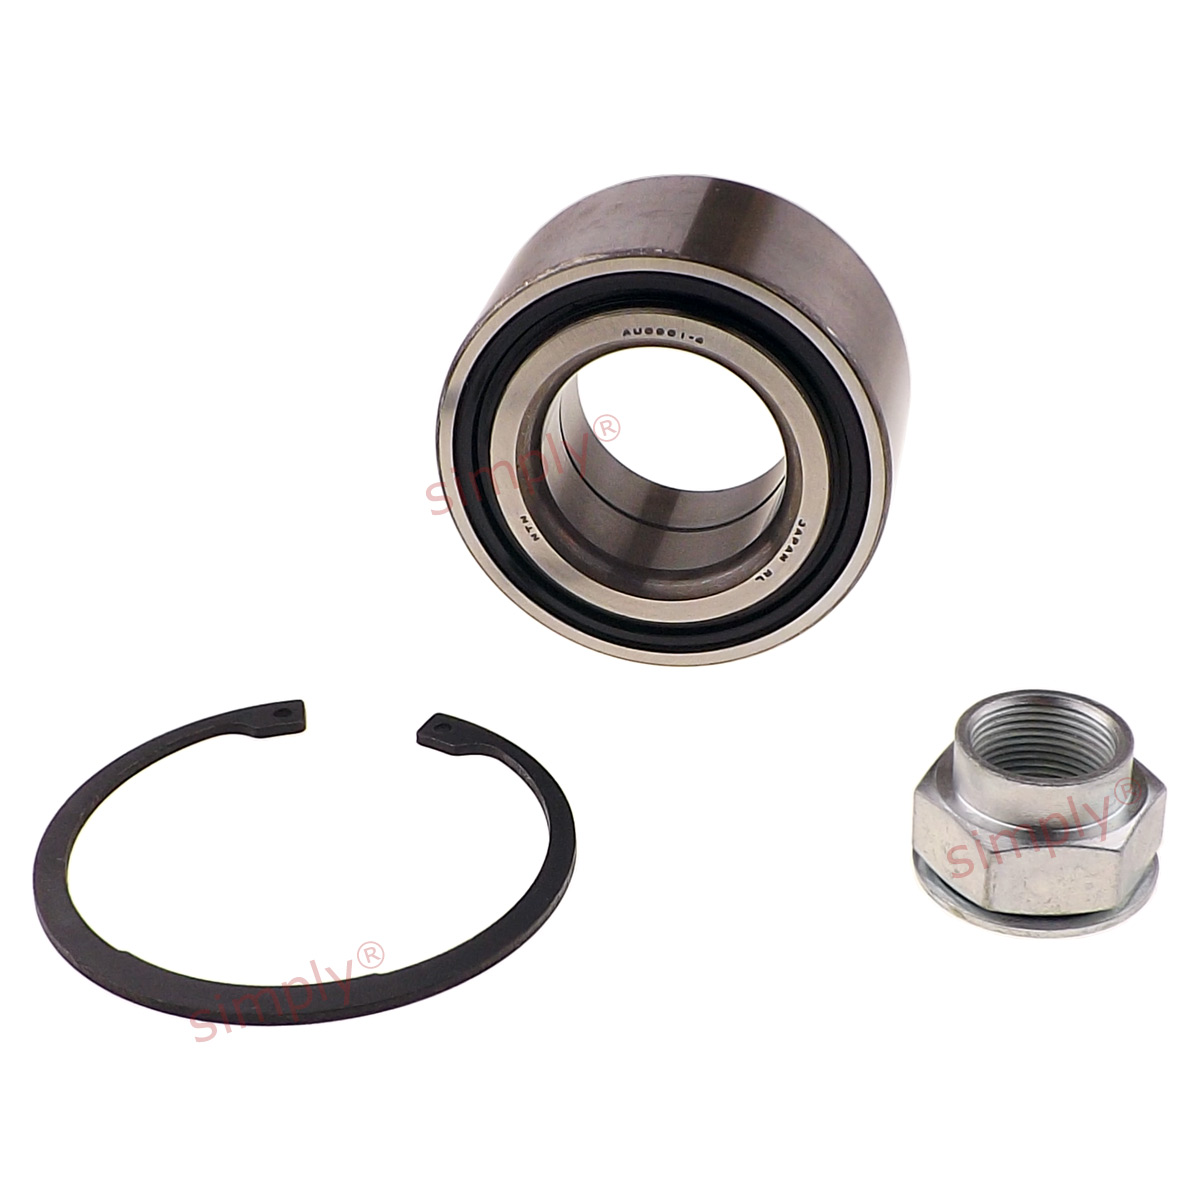 MC2 1.8 Front 97 to 01 B18C4 Firstline Wheel Bearing Kit fits HONDA CIVIC MB6